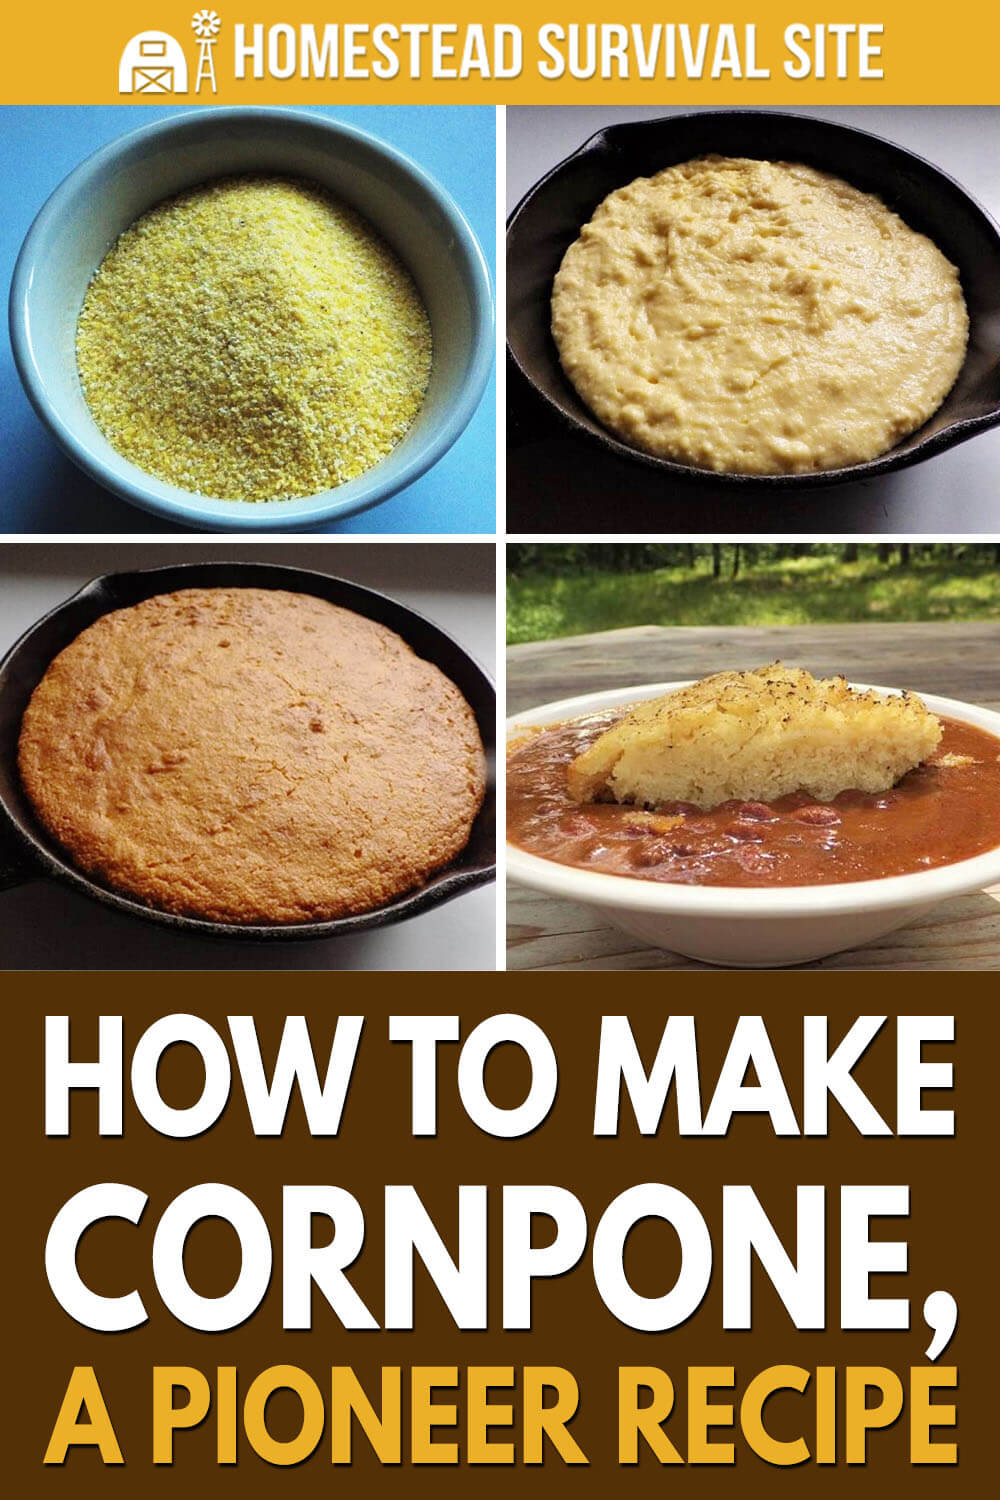 How To Make Cornpone, A Pioneer Recipe